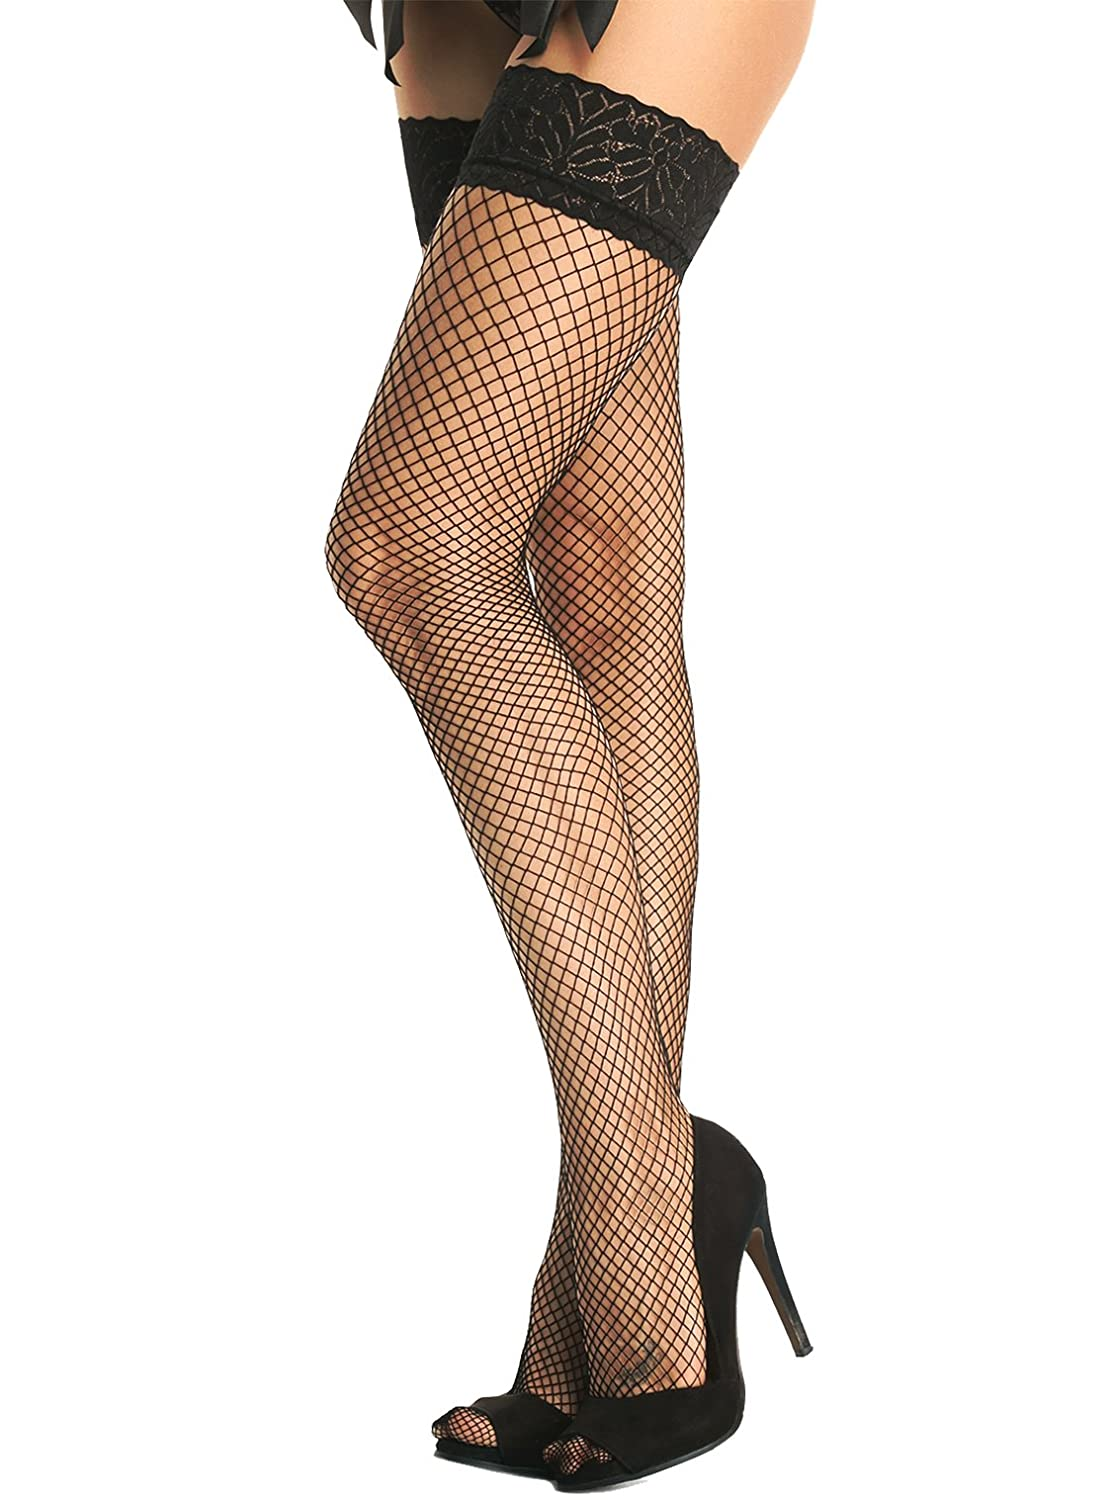 4a1369d83 Top 10 wholesale Lace Pattern Stockings - Chinabrands.com